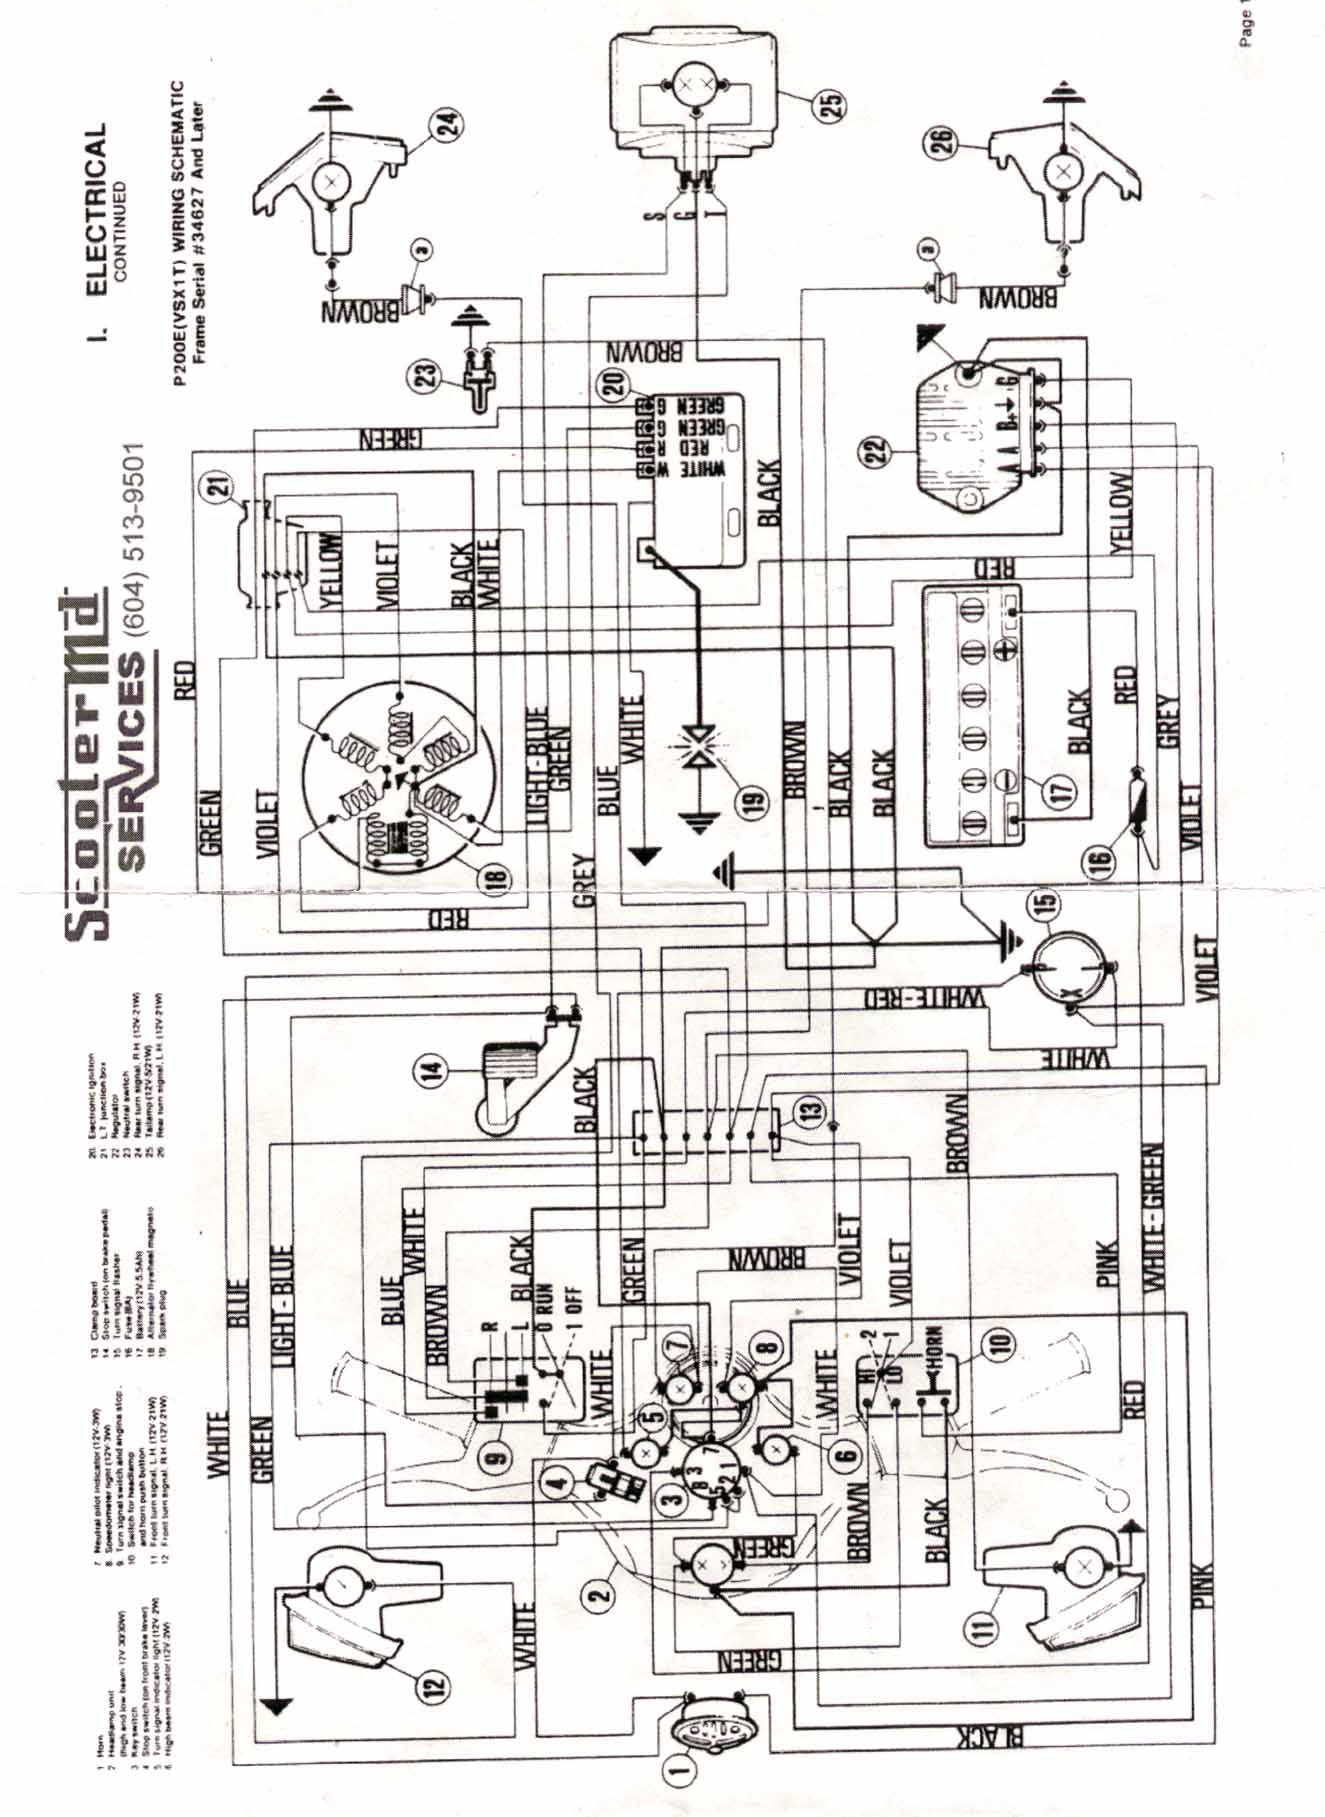 p200diag2 vespa p series maintenance & repair vespa wiring diagram p200e at bayanpartner.co